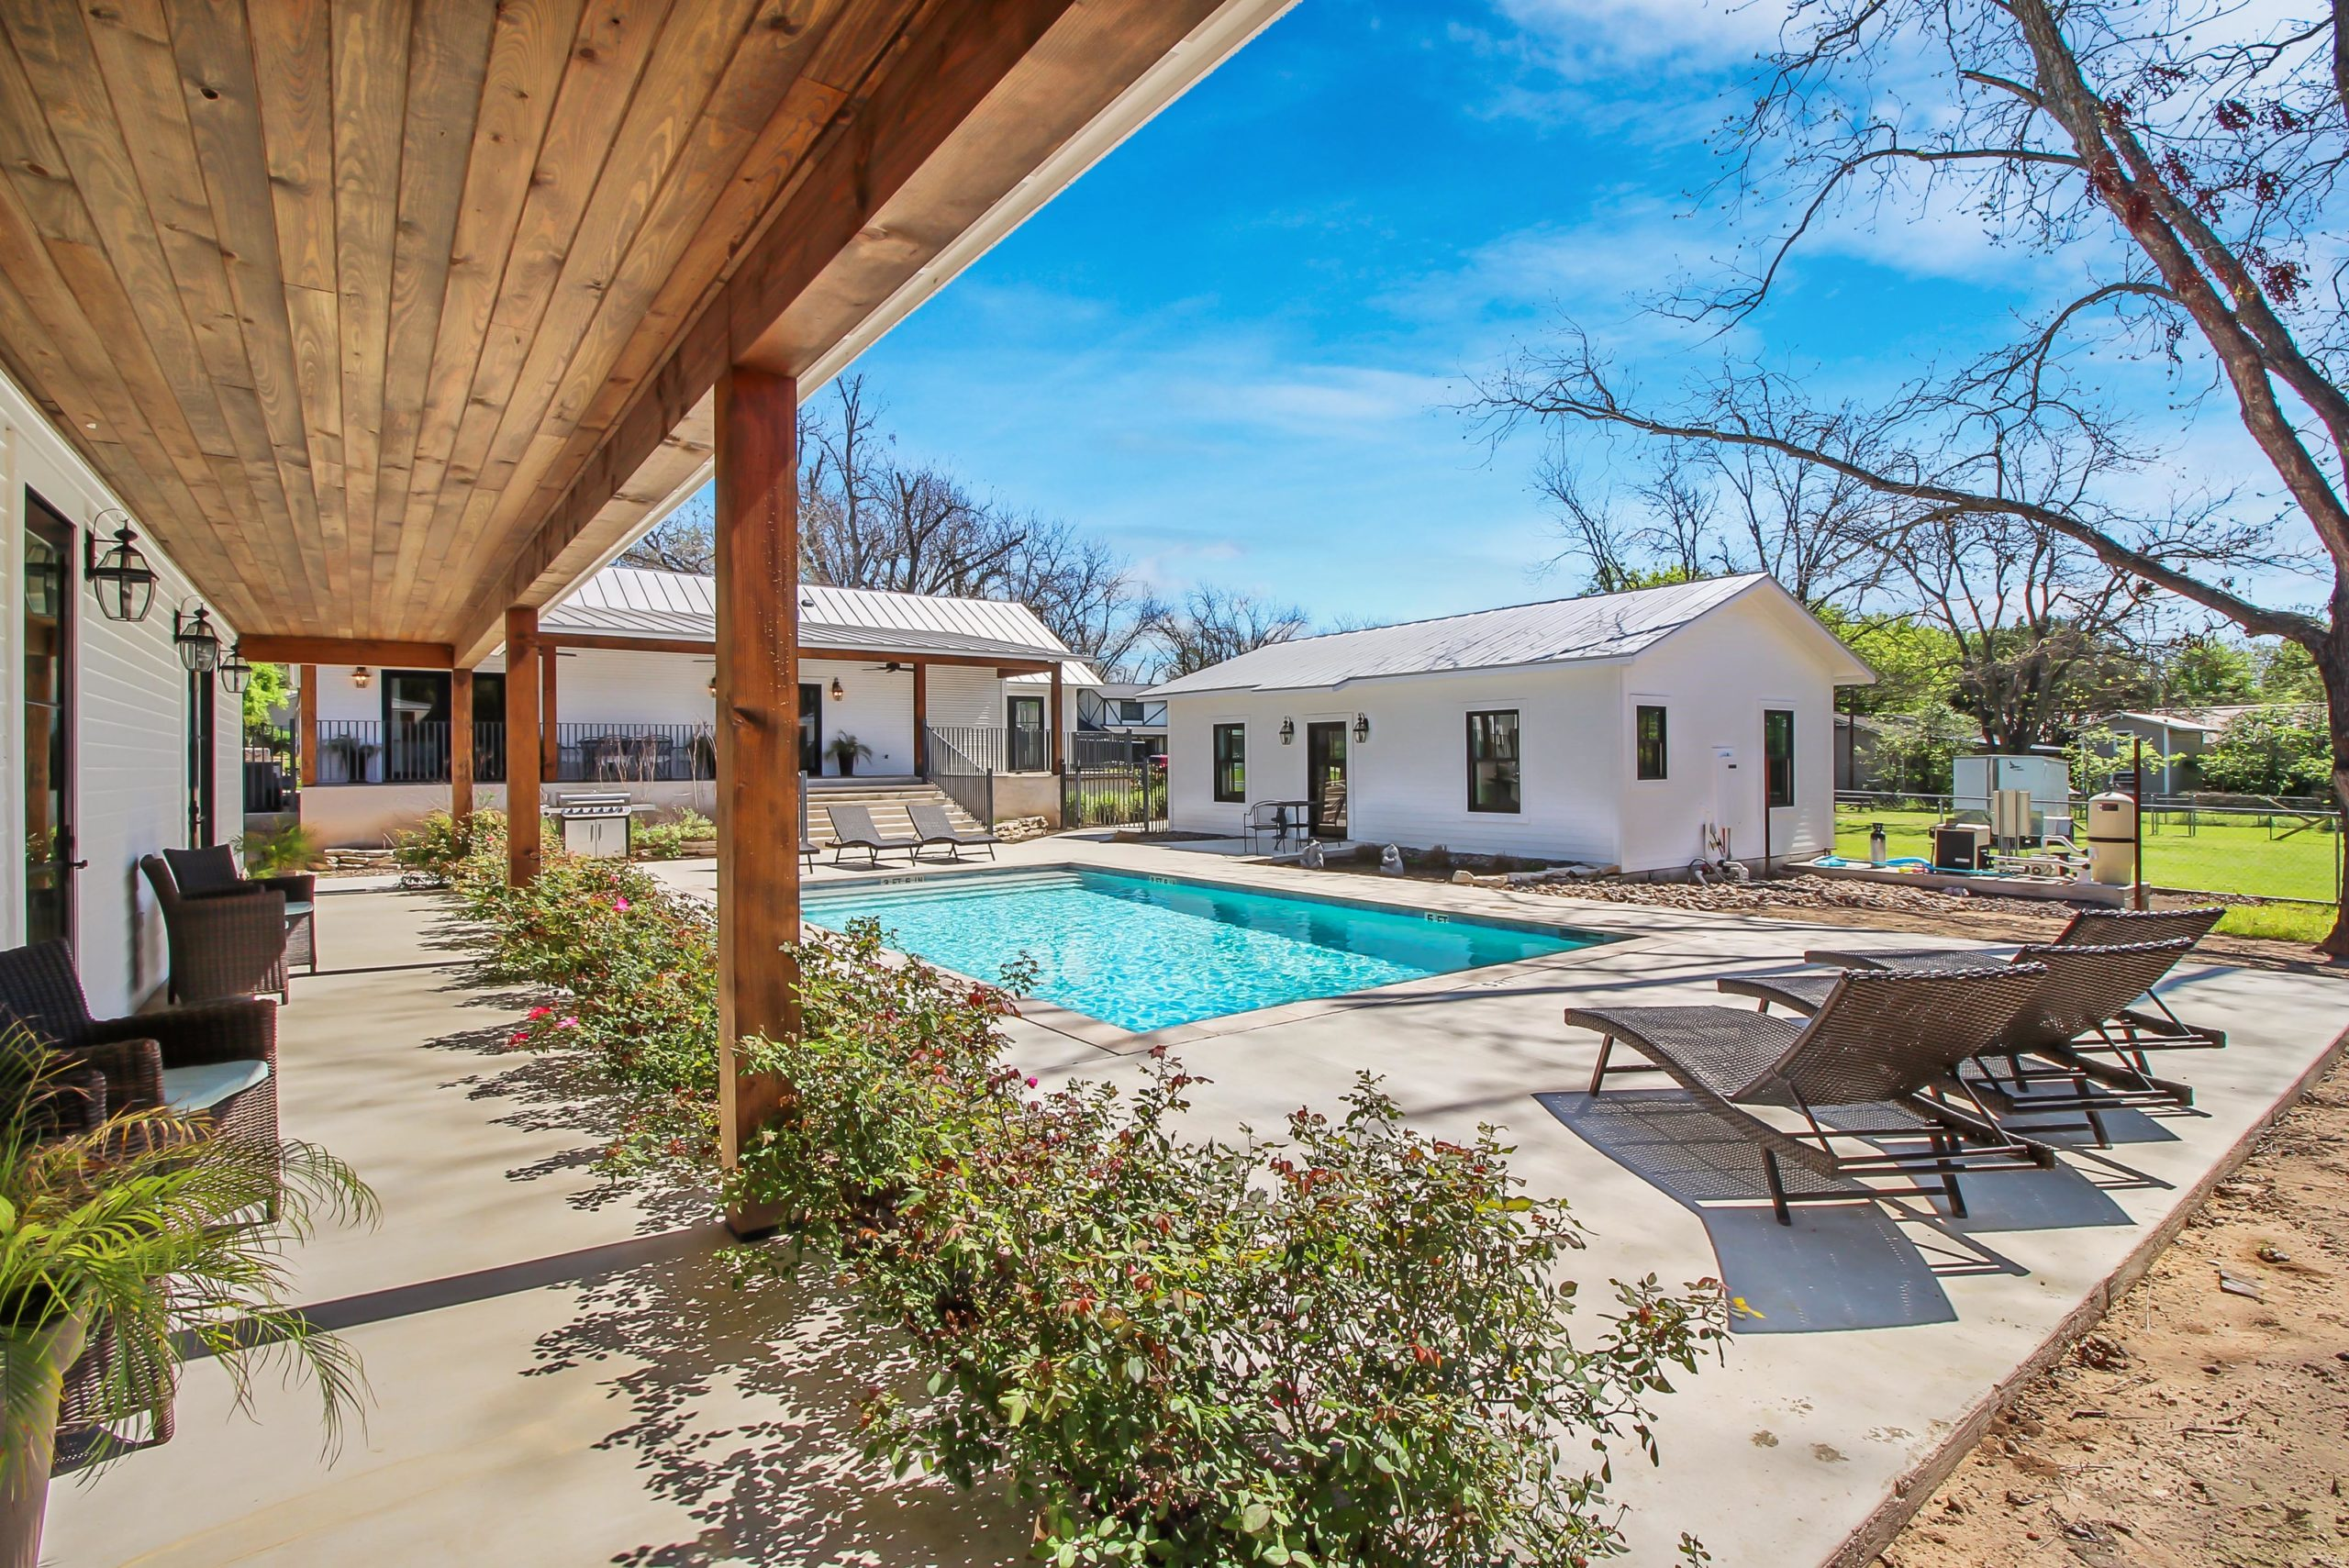 205 Schubert Fredericksburg B&B complex for sale & Short term rental property for sale Fredericksburg TX